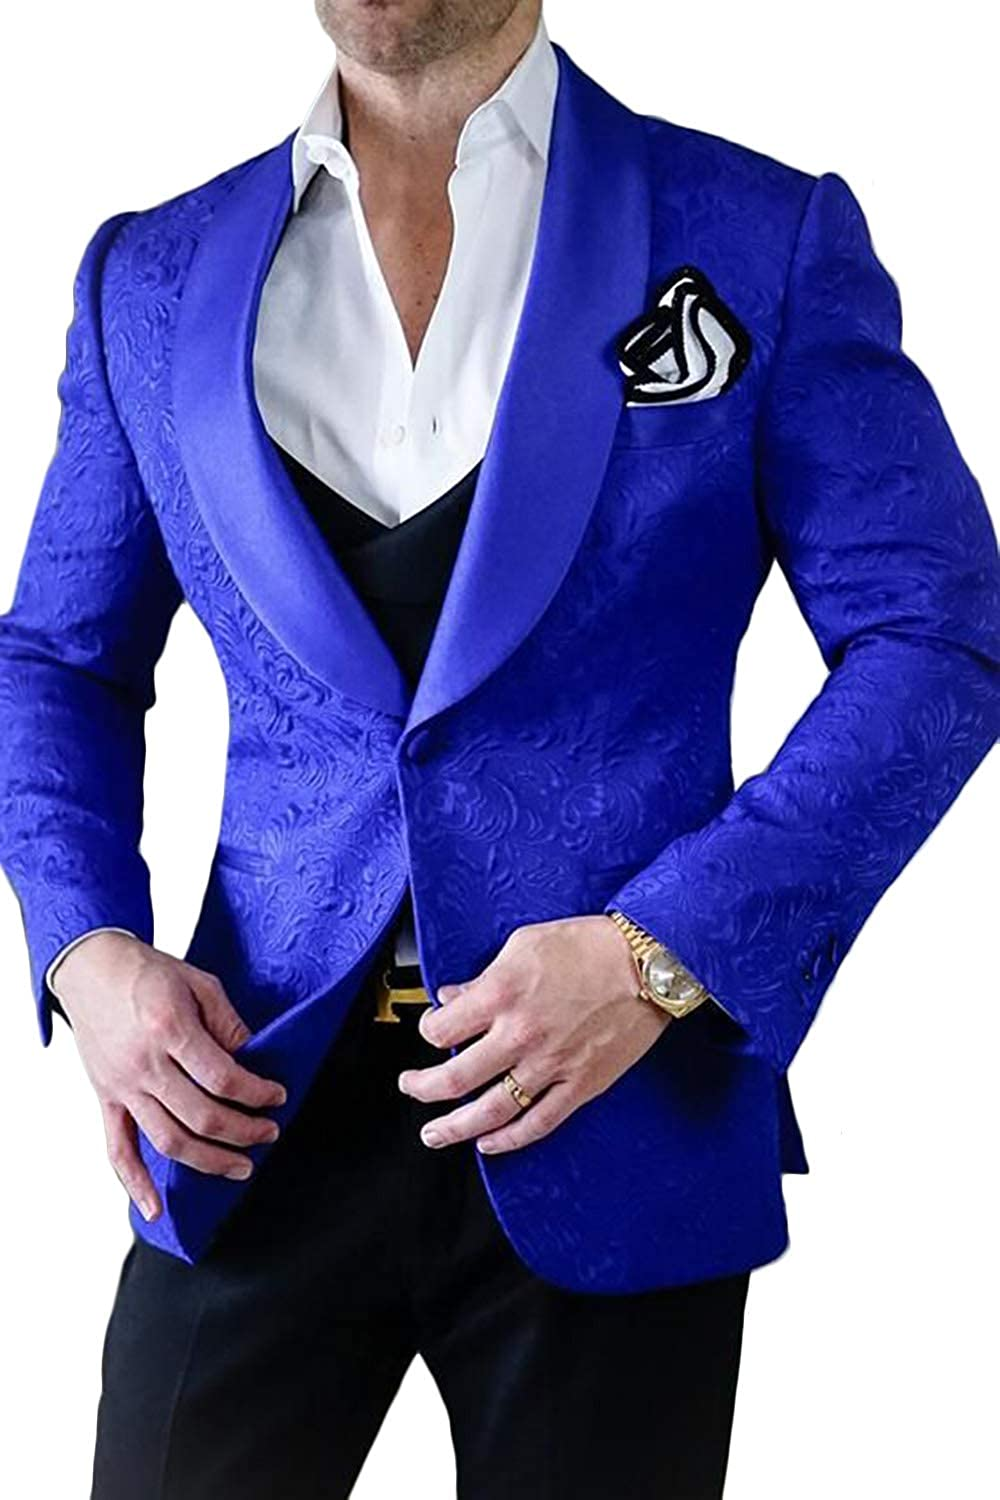 Wemaliyzd Men's 3 Pieces Vintage Patterned Suit Double Breasted Collar Vest Pants